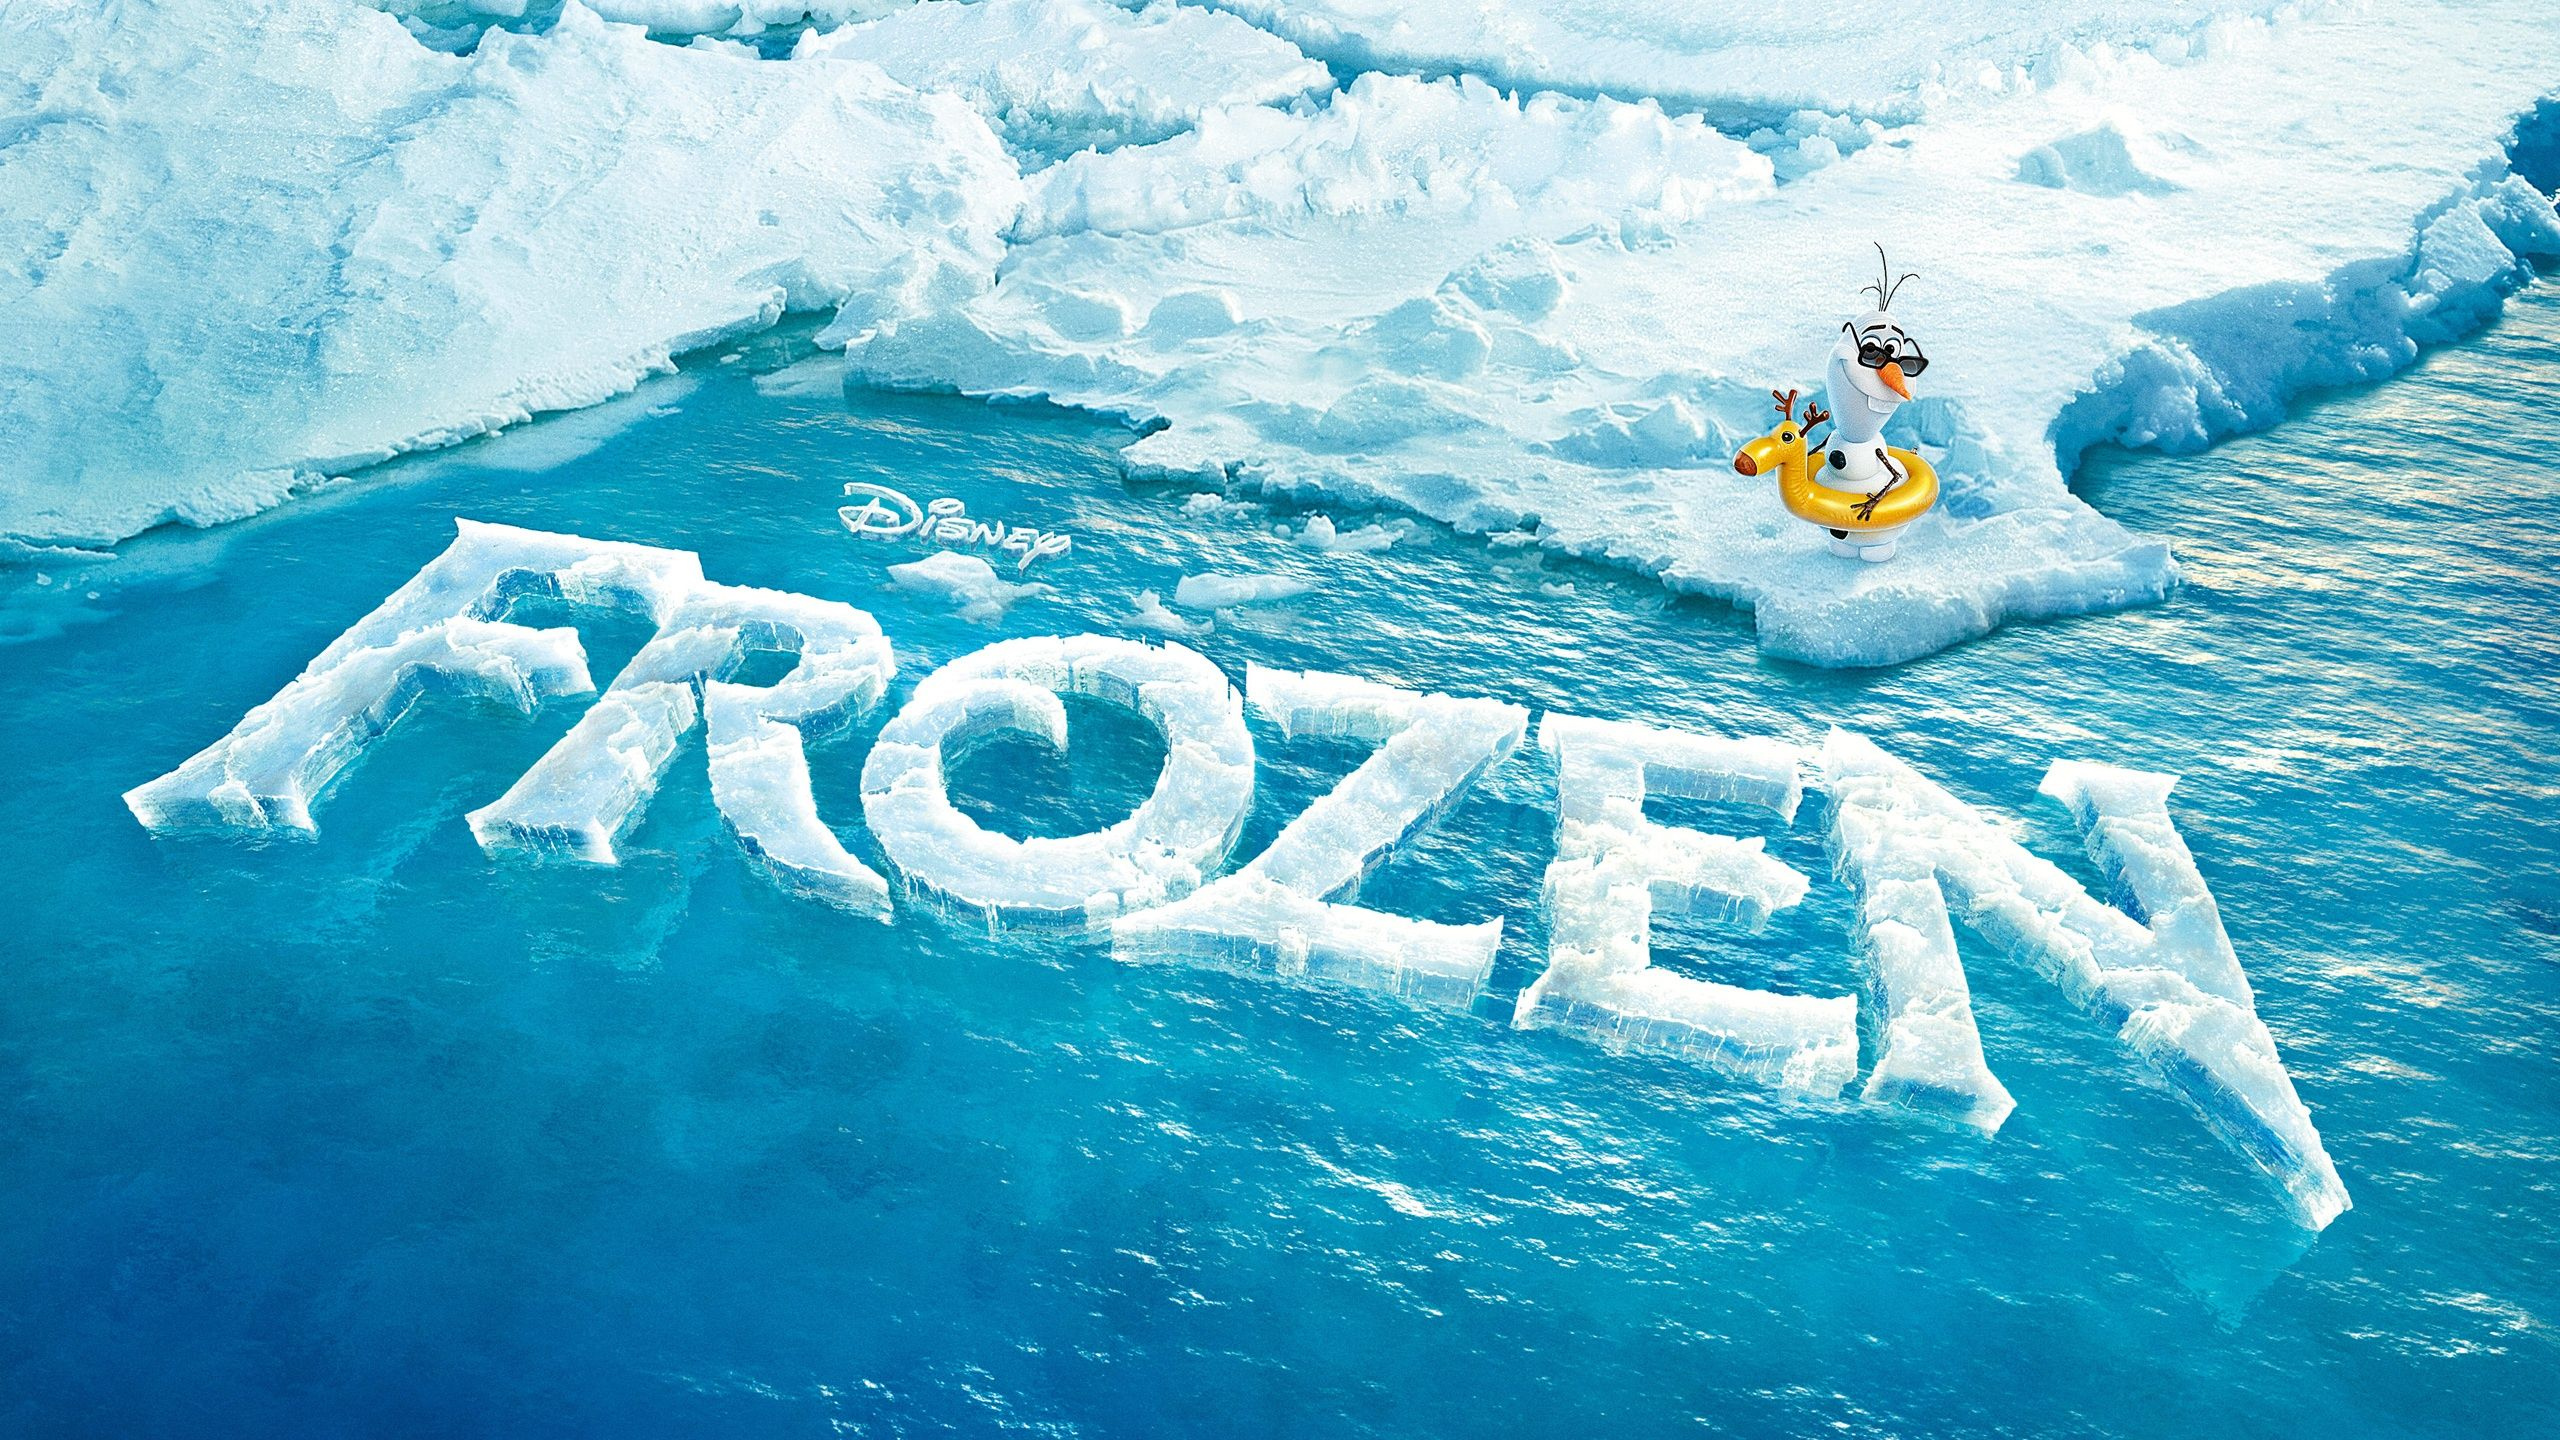 frozen movie hd wallpapers for your desktop - free download